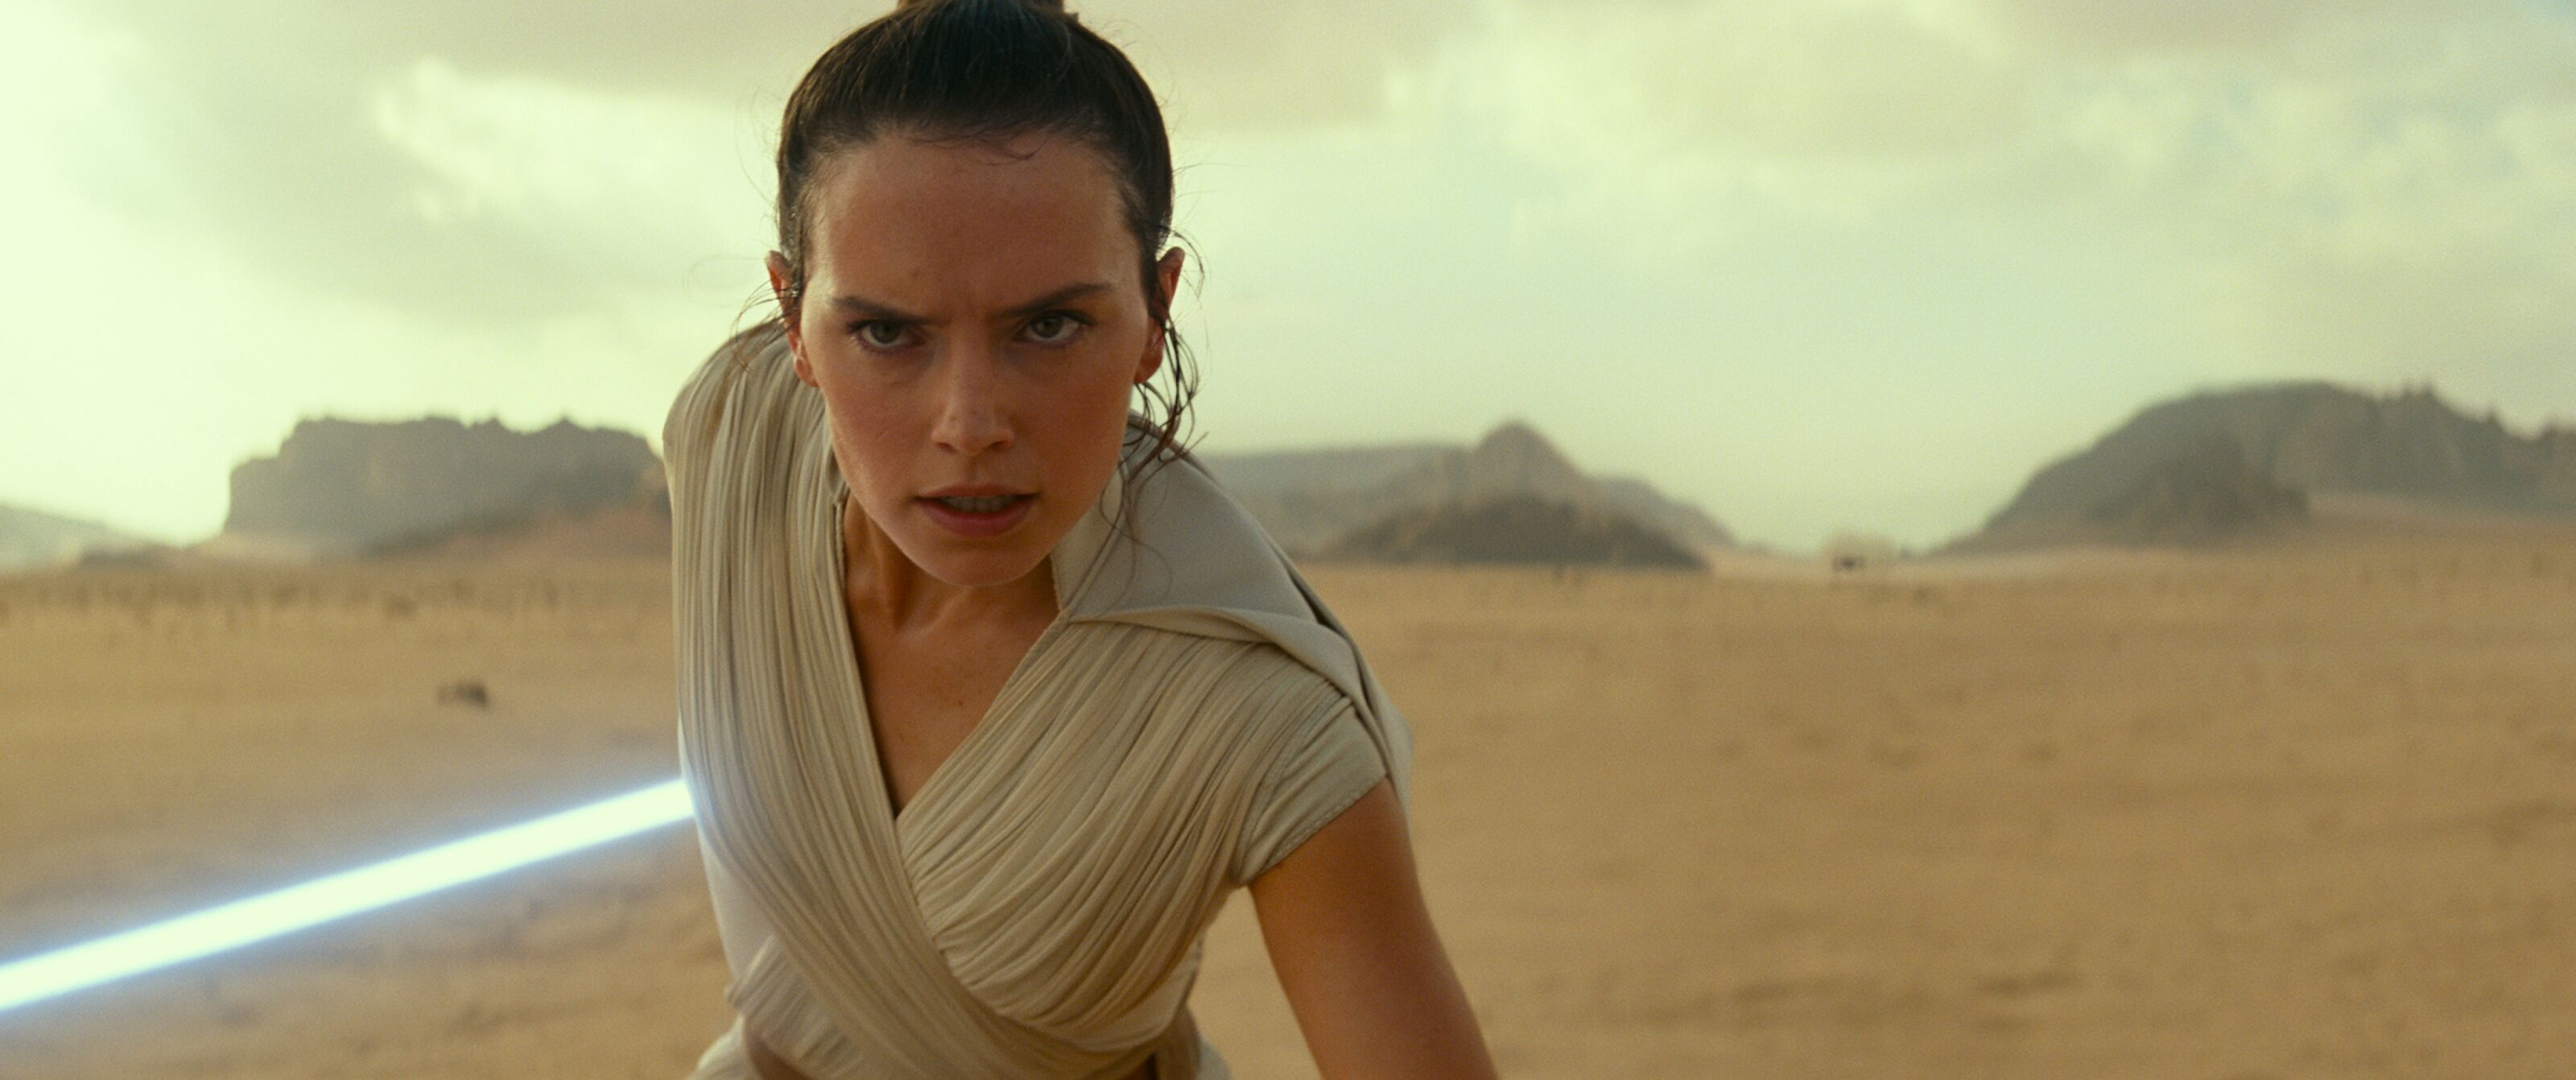 Star Wars: The Rise of Skywalker rumors have spread to the ending